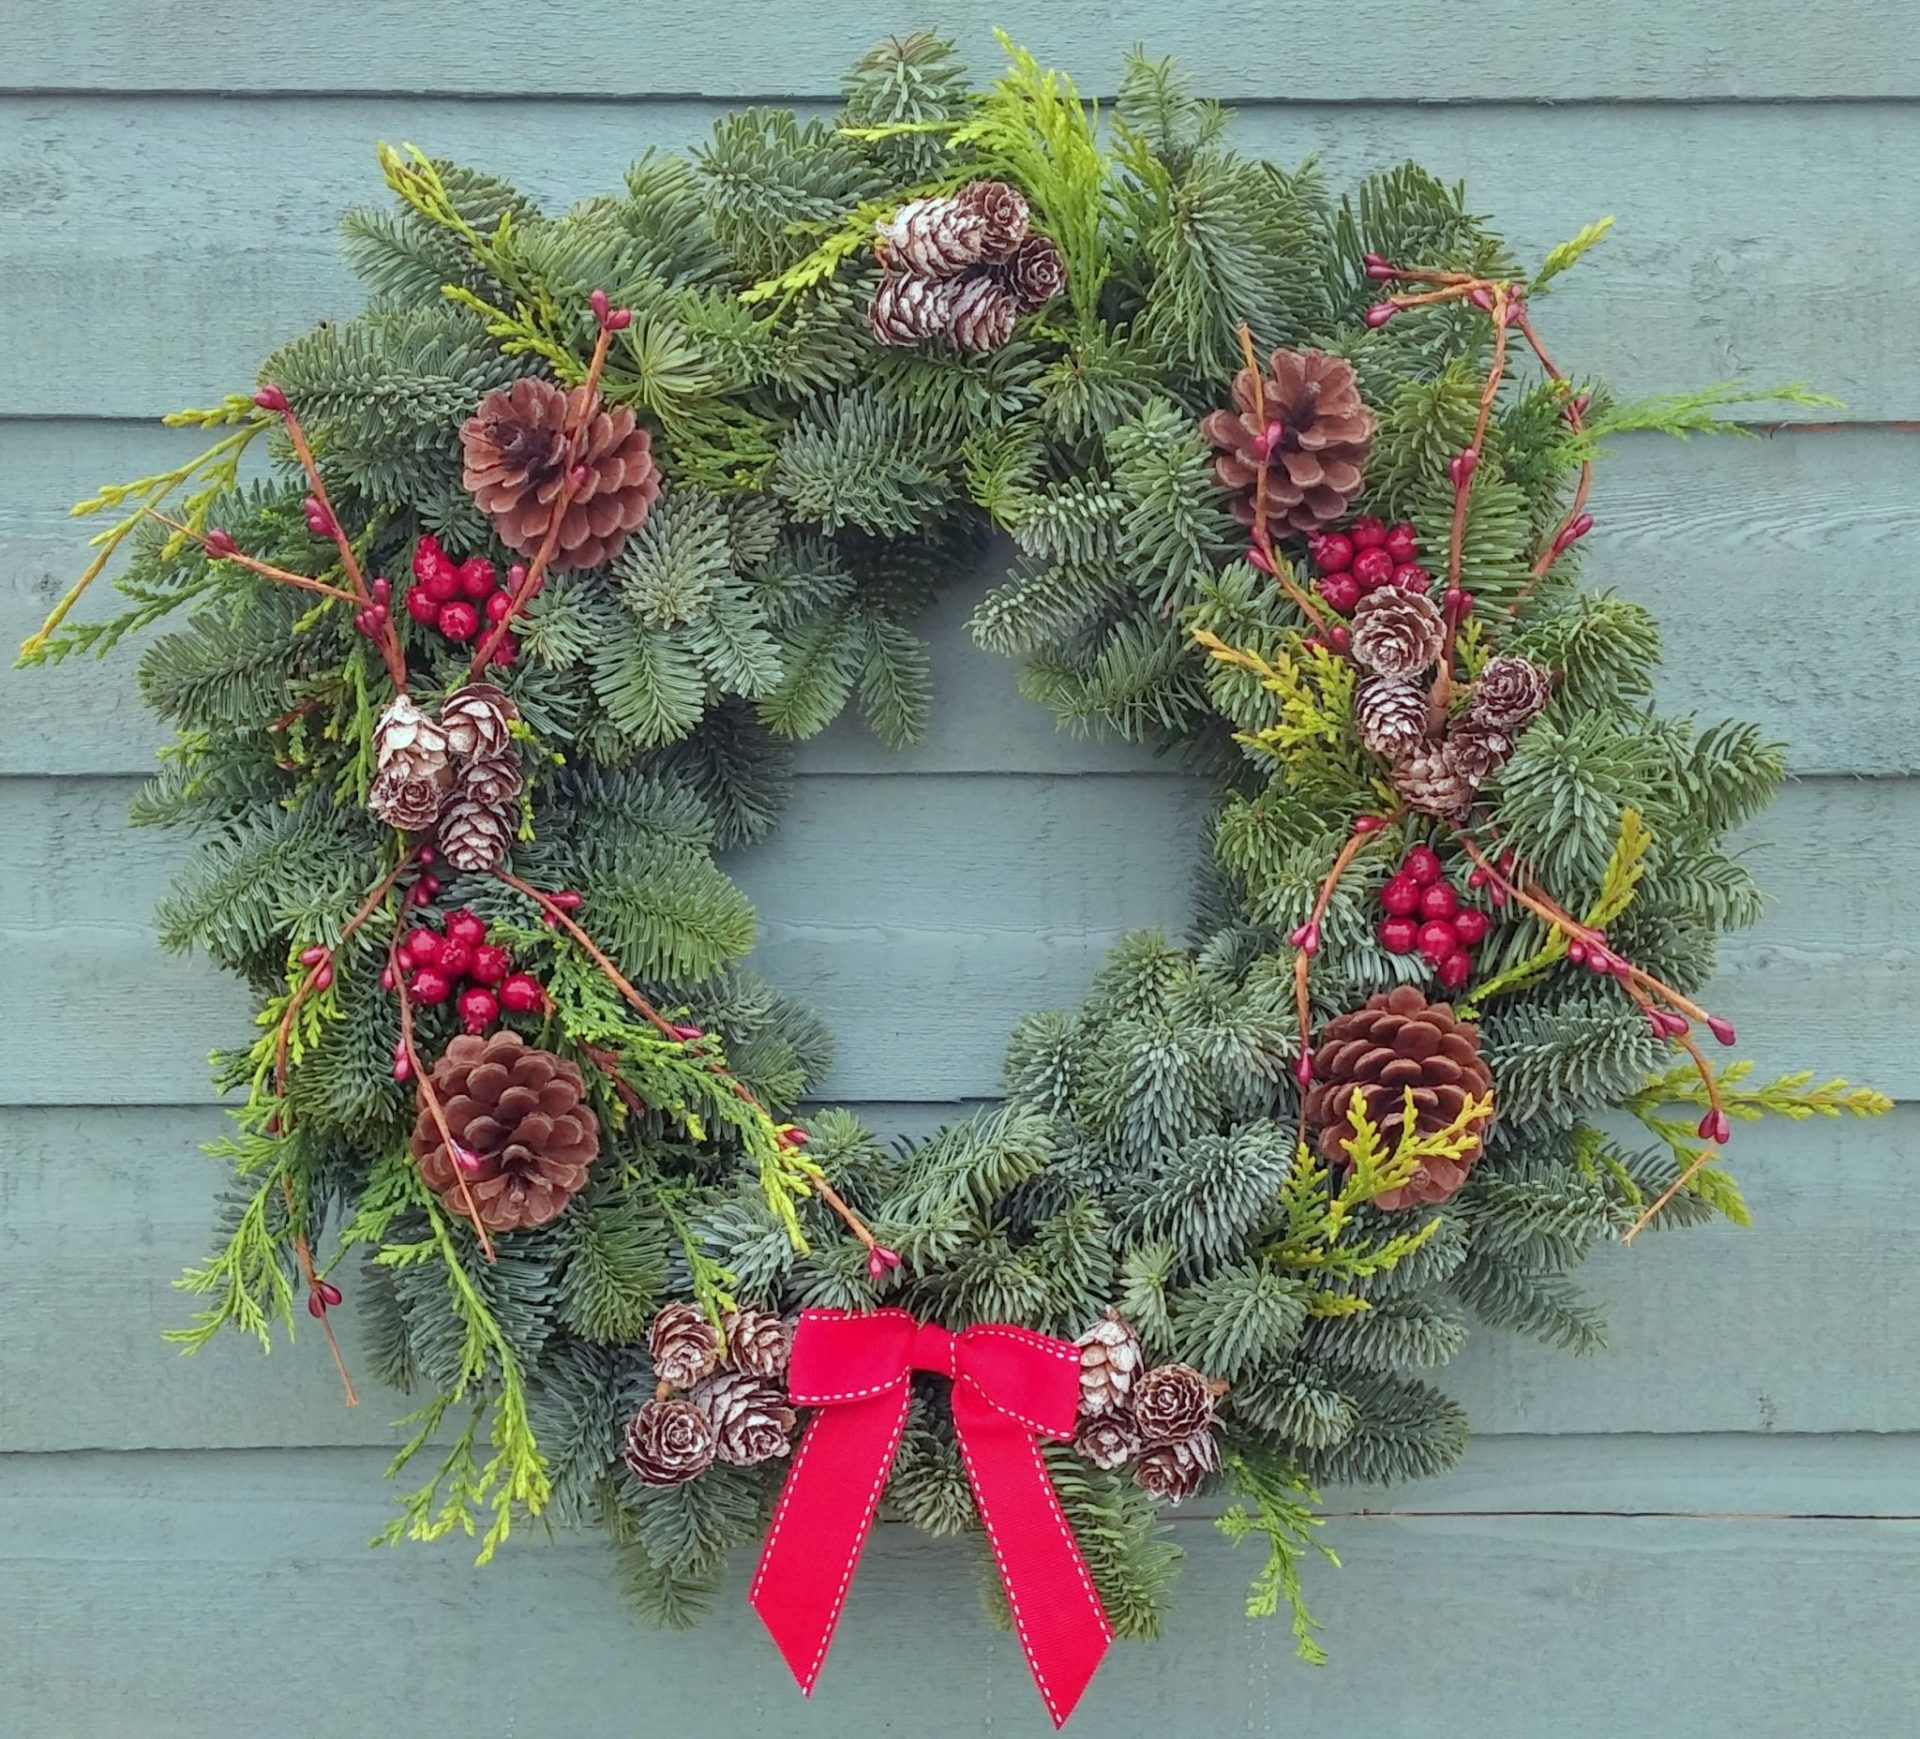 Christmas Wreaths Delivered - Buy Your Real Christmas Wreath Online